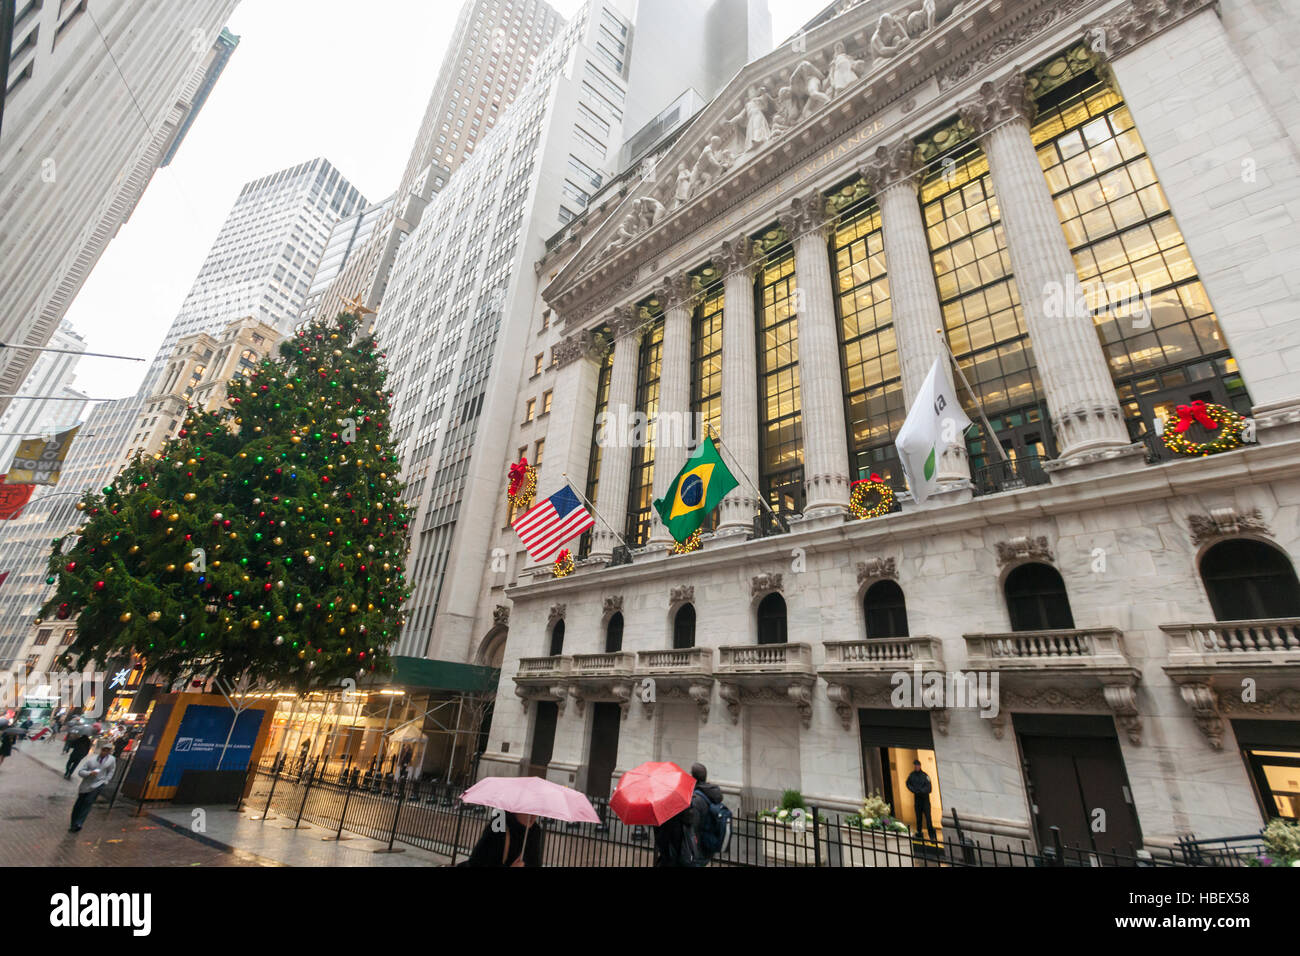 The front of the New York Stock Exchange on Wednesday November 30